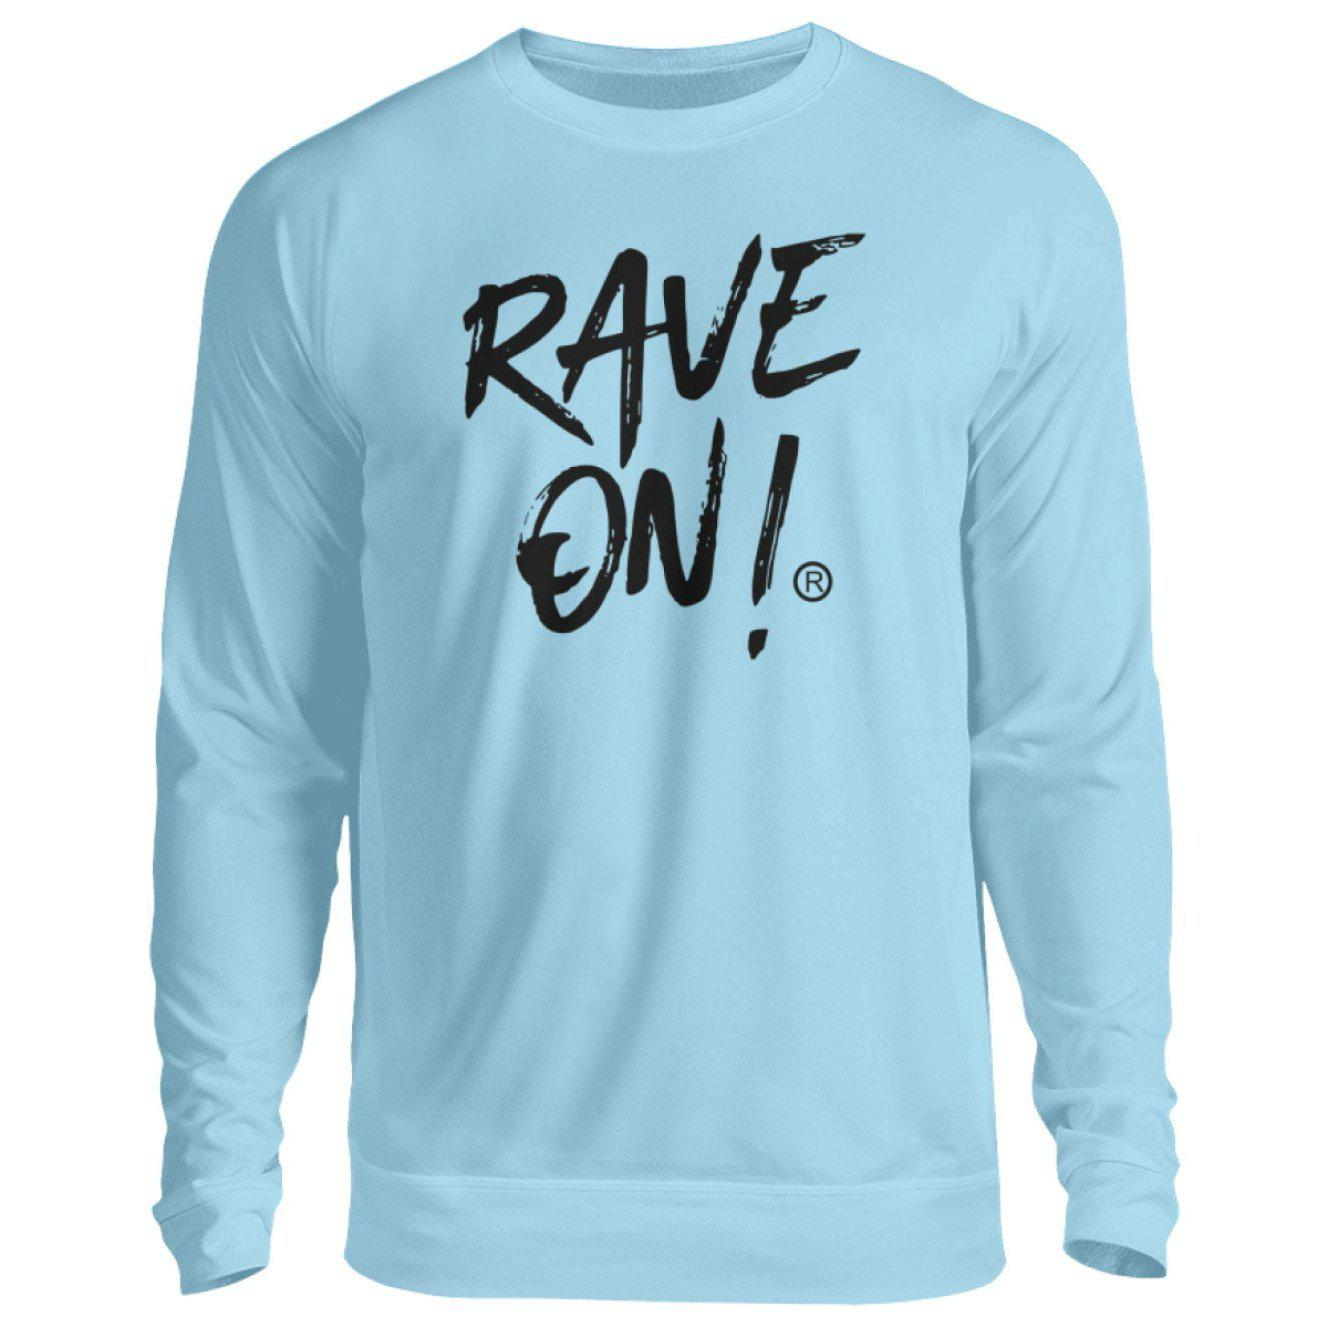 RAVE ON!® Light Collection - Unisex Pullover-Unisex Sweatshirt-Himmelblau-S-Rave-On! I www.rave-on.shop I Deine Rave & Techno Szene Shop I Design - RAVE ON!® Light Collection - Sexy Festival Streetwear , Clubwear & Raver Style